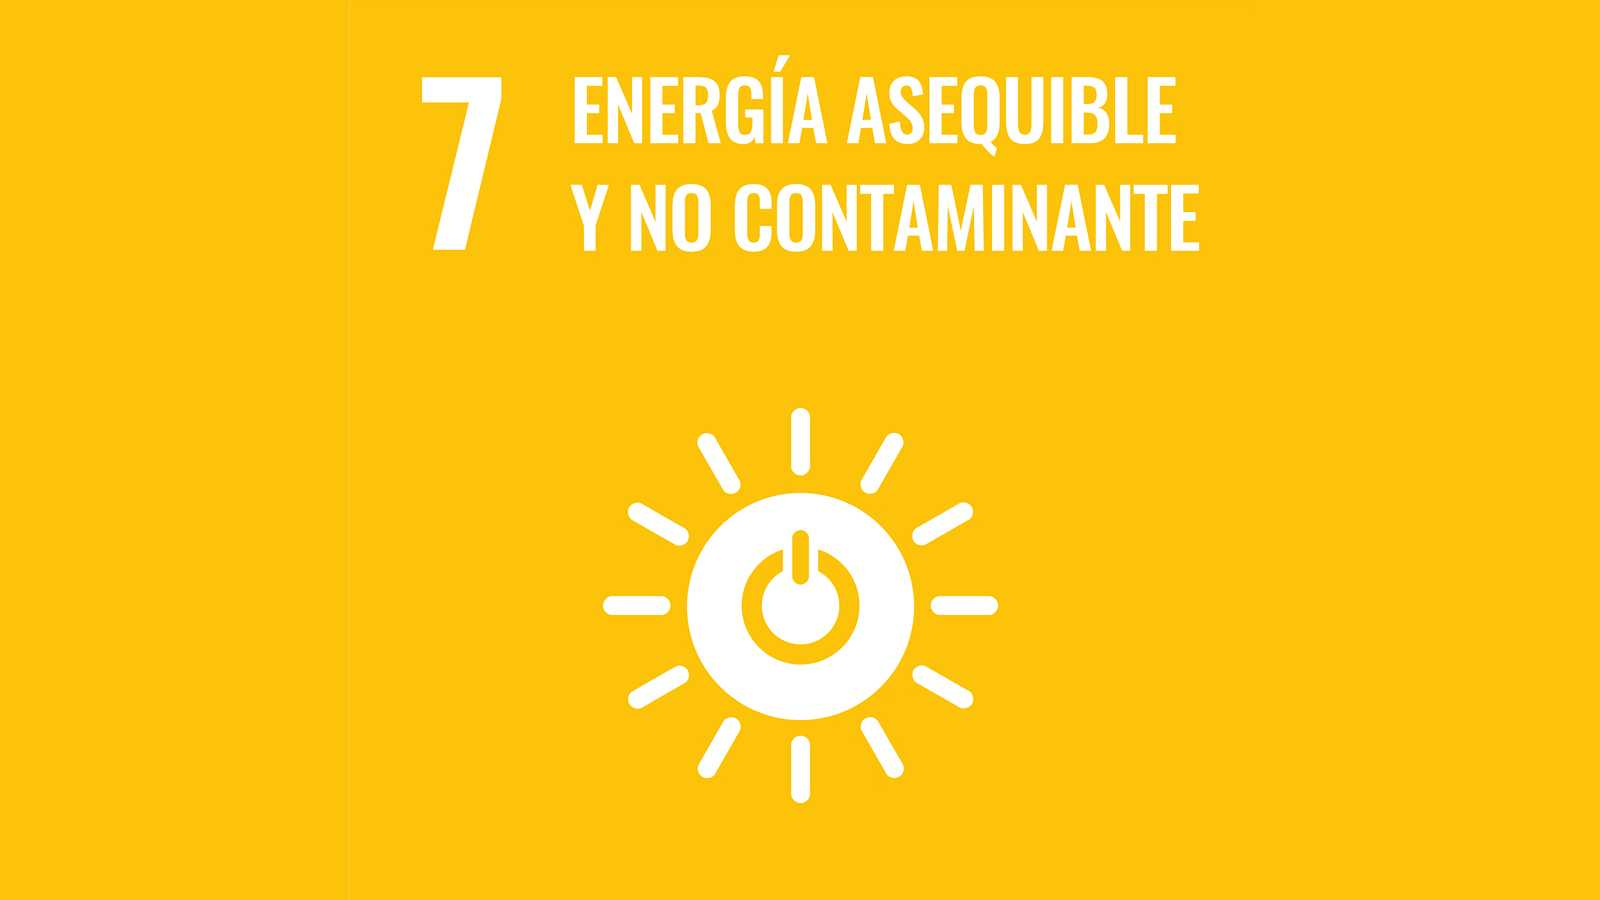 Energia asequible y no contaminante